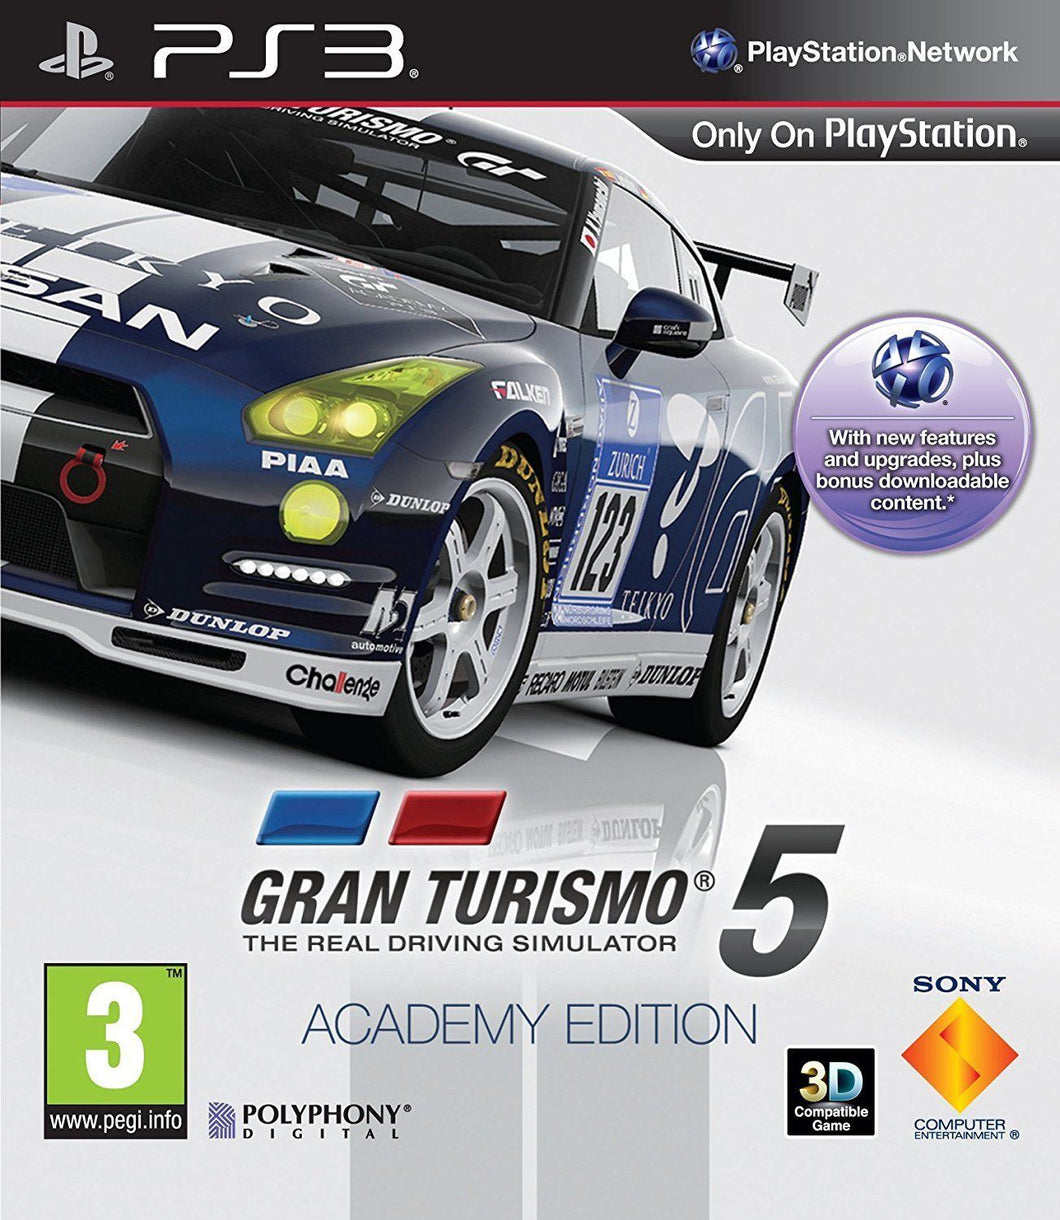 GRAN TURISMO 5 ACADEMY EDITION - SEAL WEAR